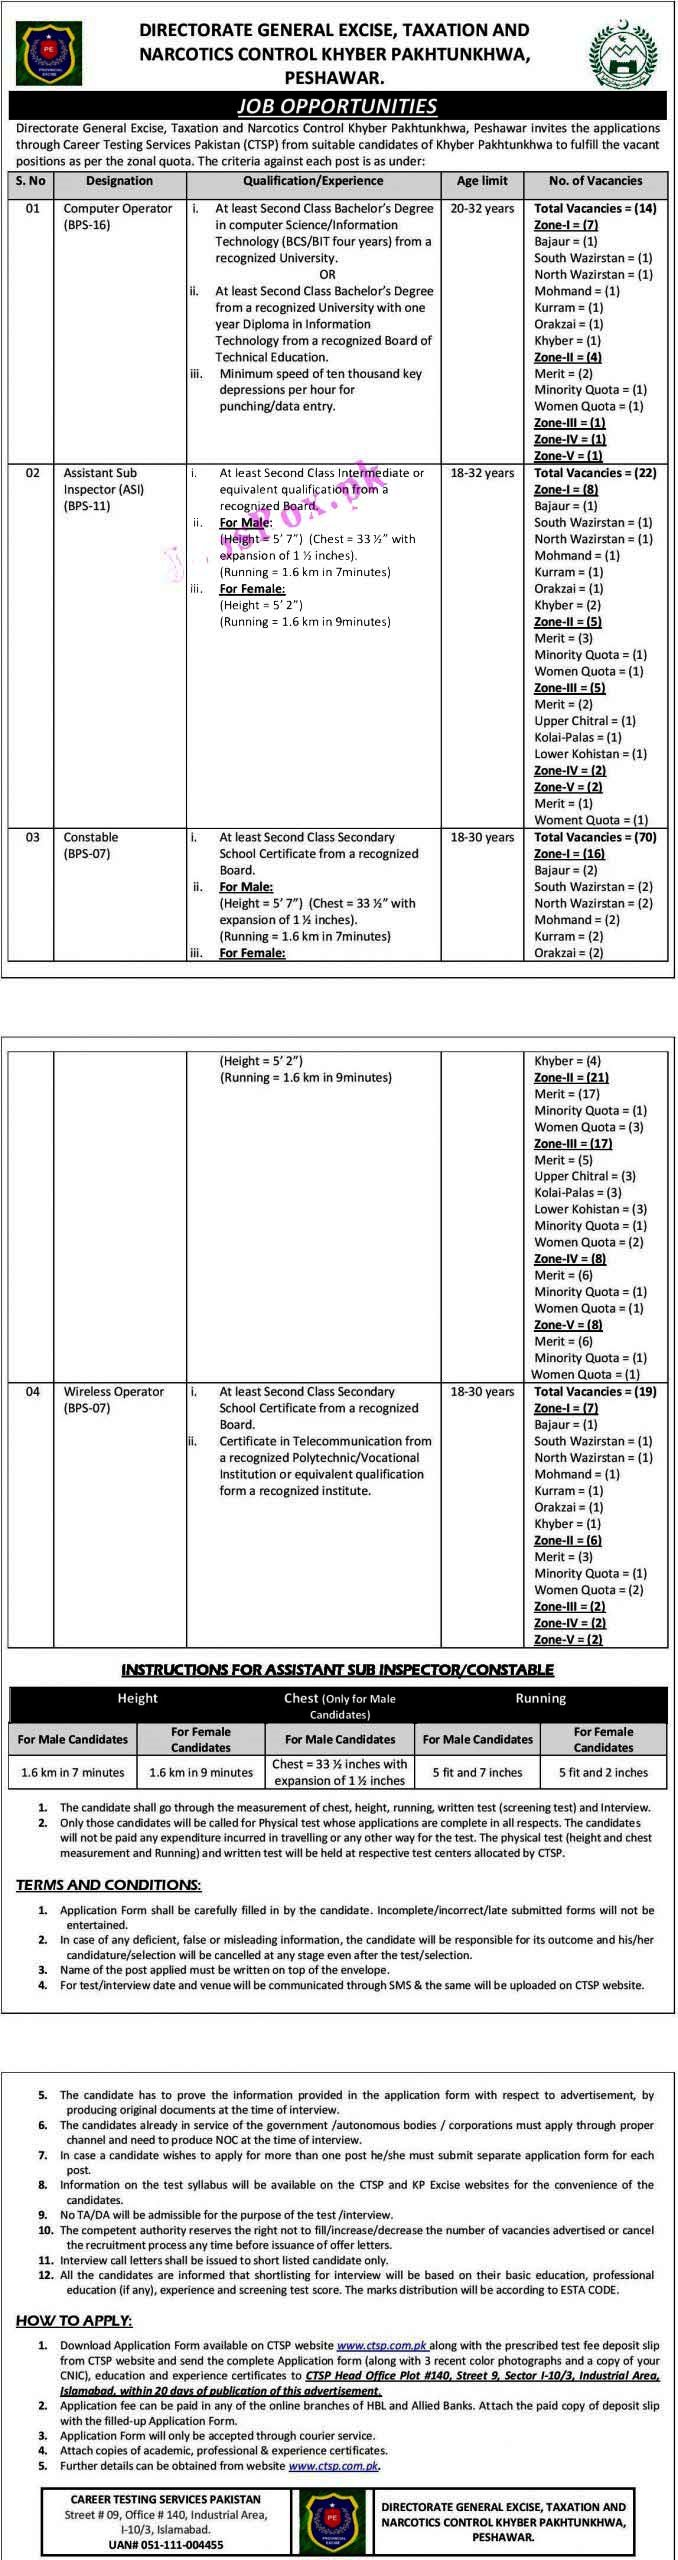 Latest Jobs in Excise Taxation and Narcotics Control Department 2021